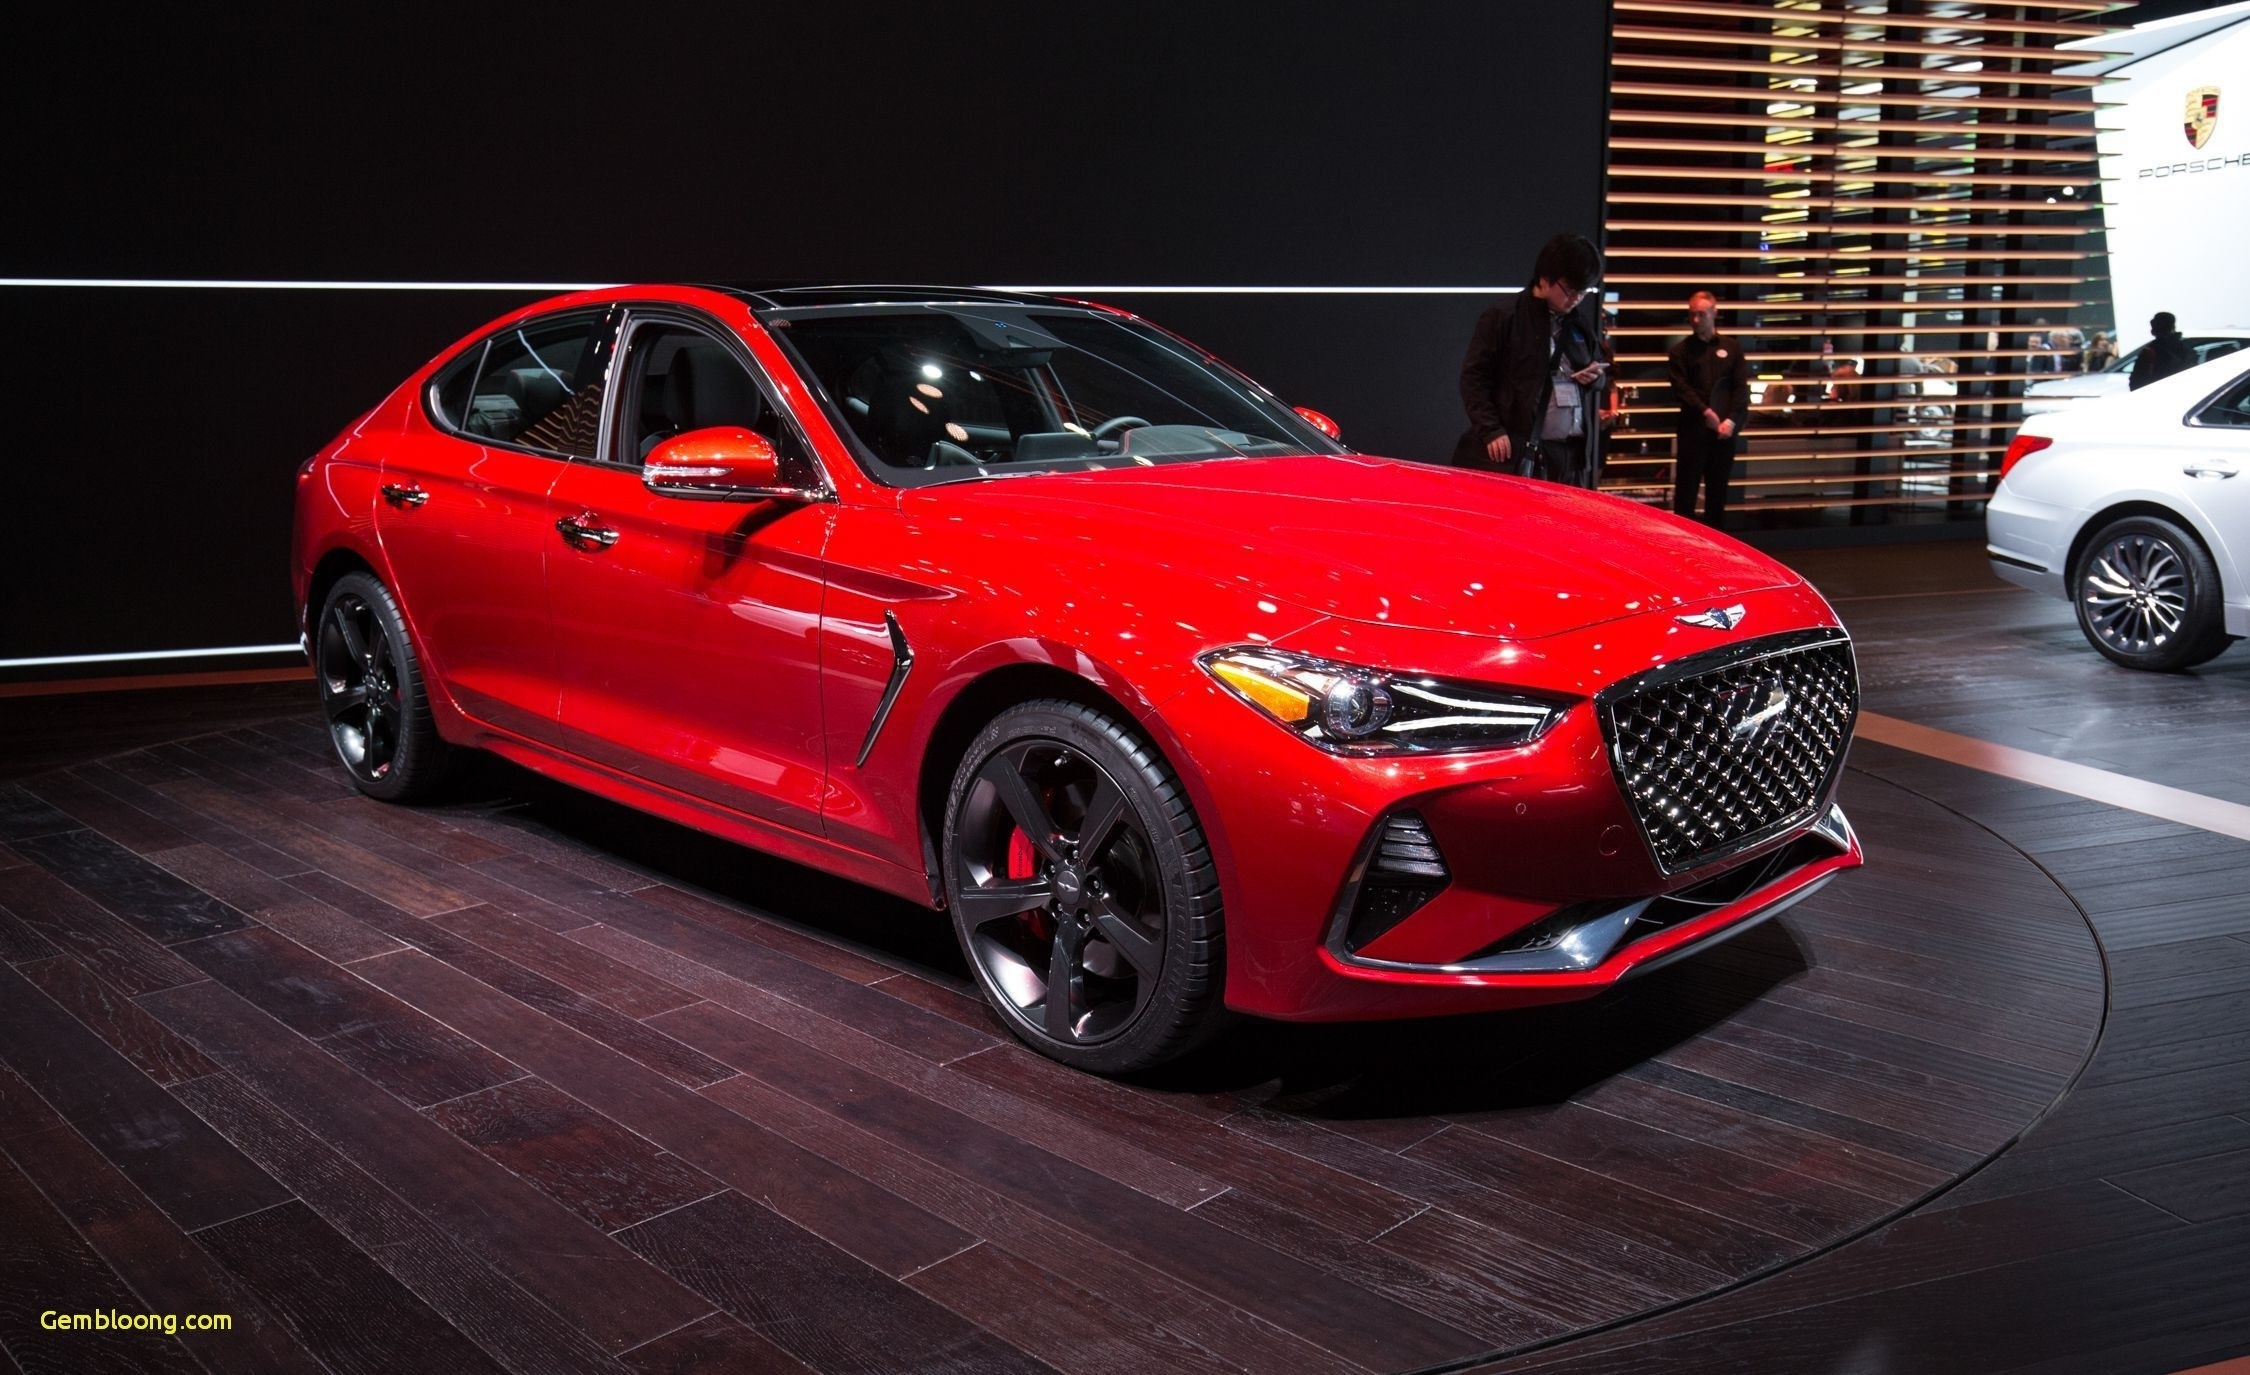 91 New 2020 Hyundai Genesis Coupe V8 Exterior and Interior